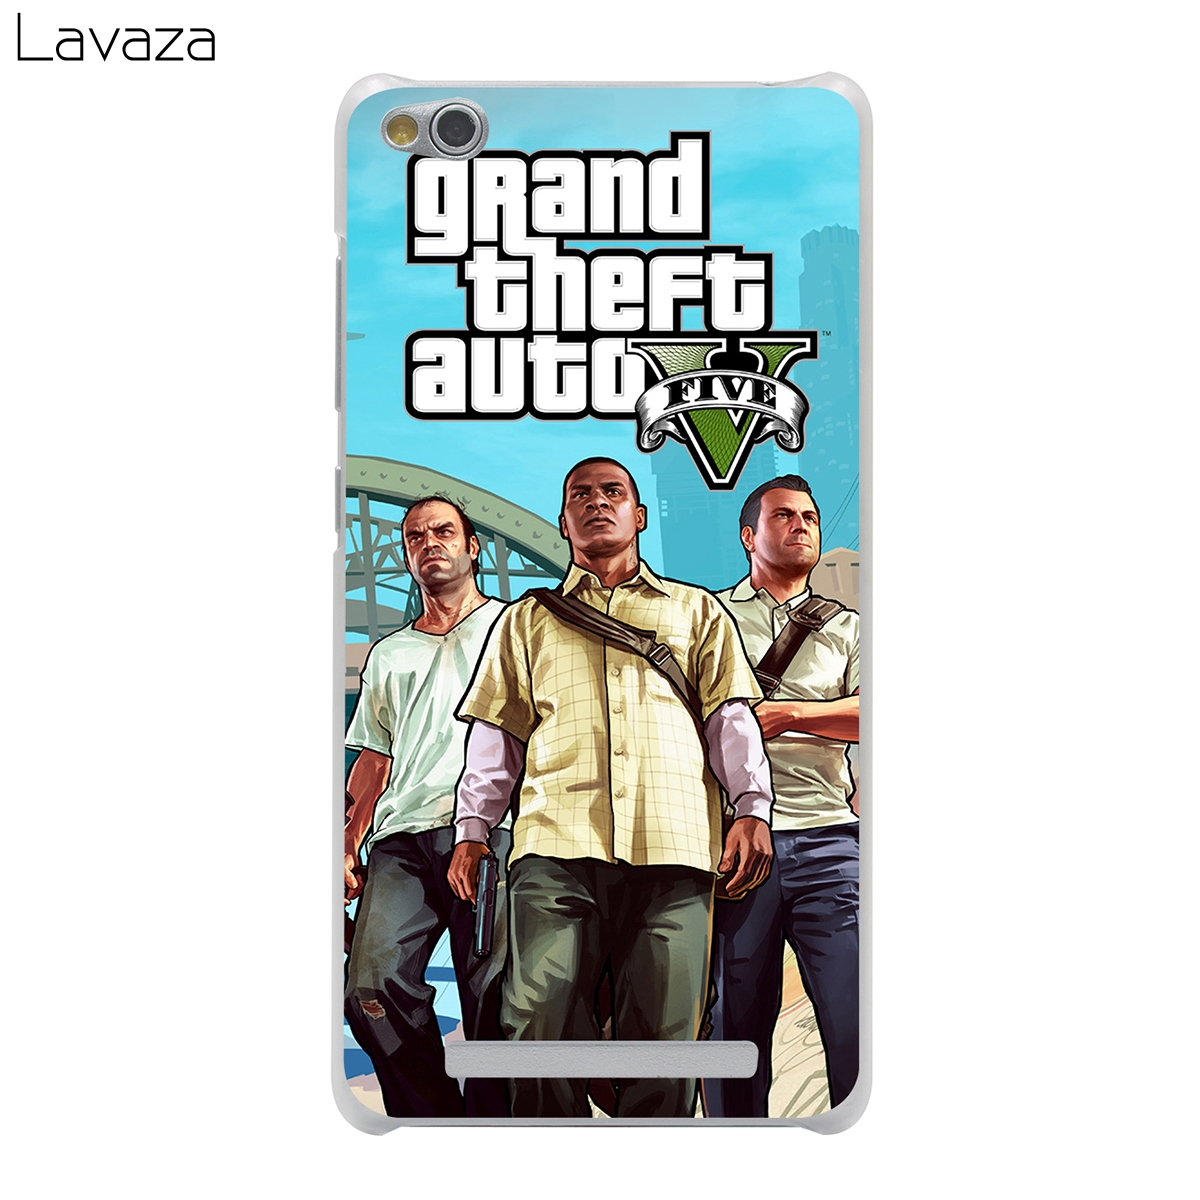 Lavaza Grand Theft Auto GTA V Cover Case for Xiaomi Redmi Note Mi 3 3S 4X 4 4A A1 5 5A 5S 5X MI5 MI6 Pro Plus